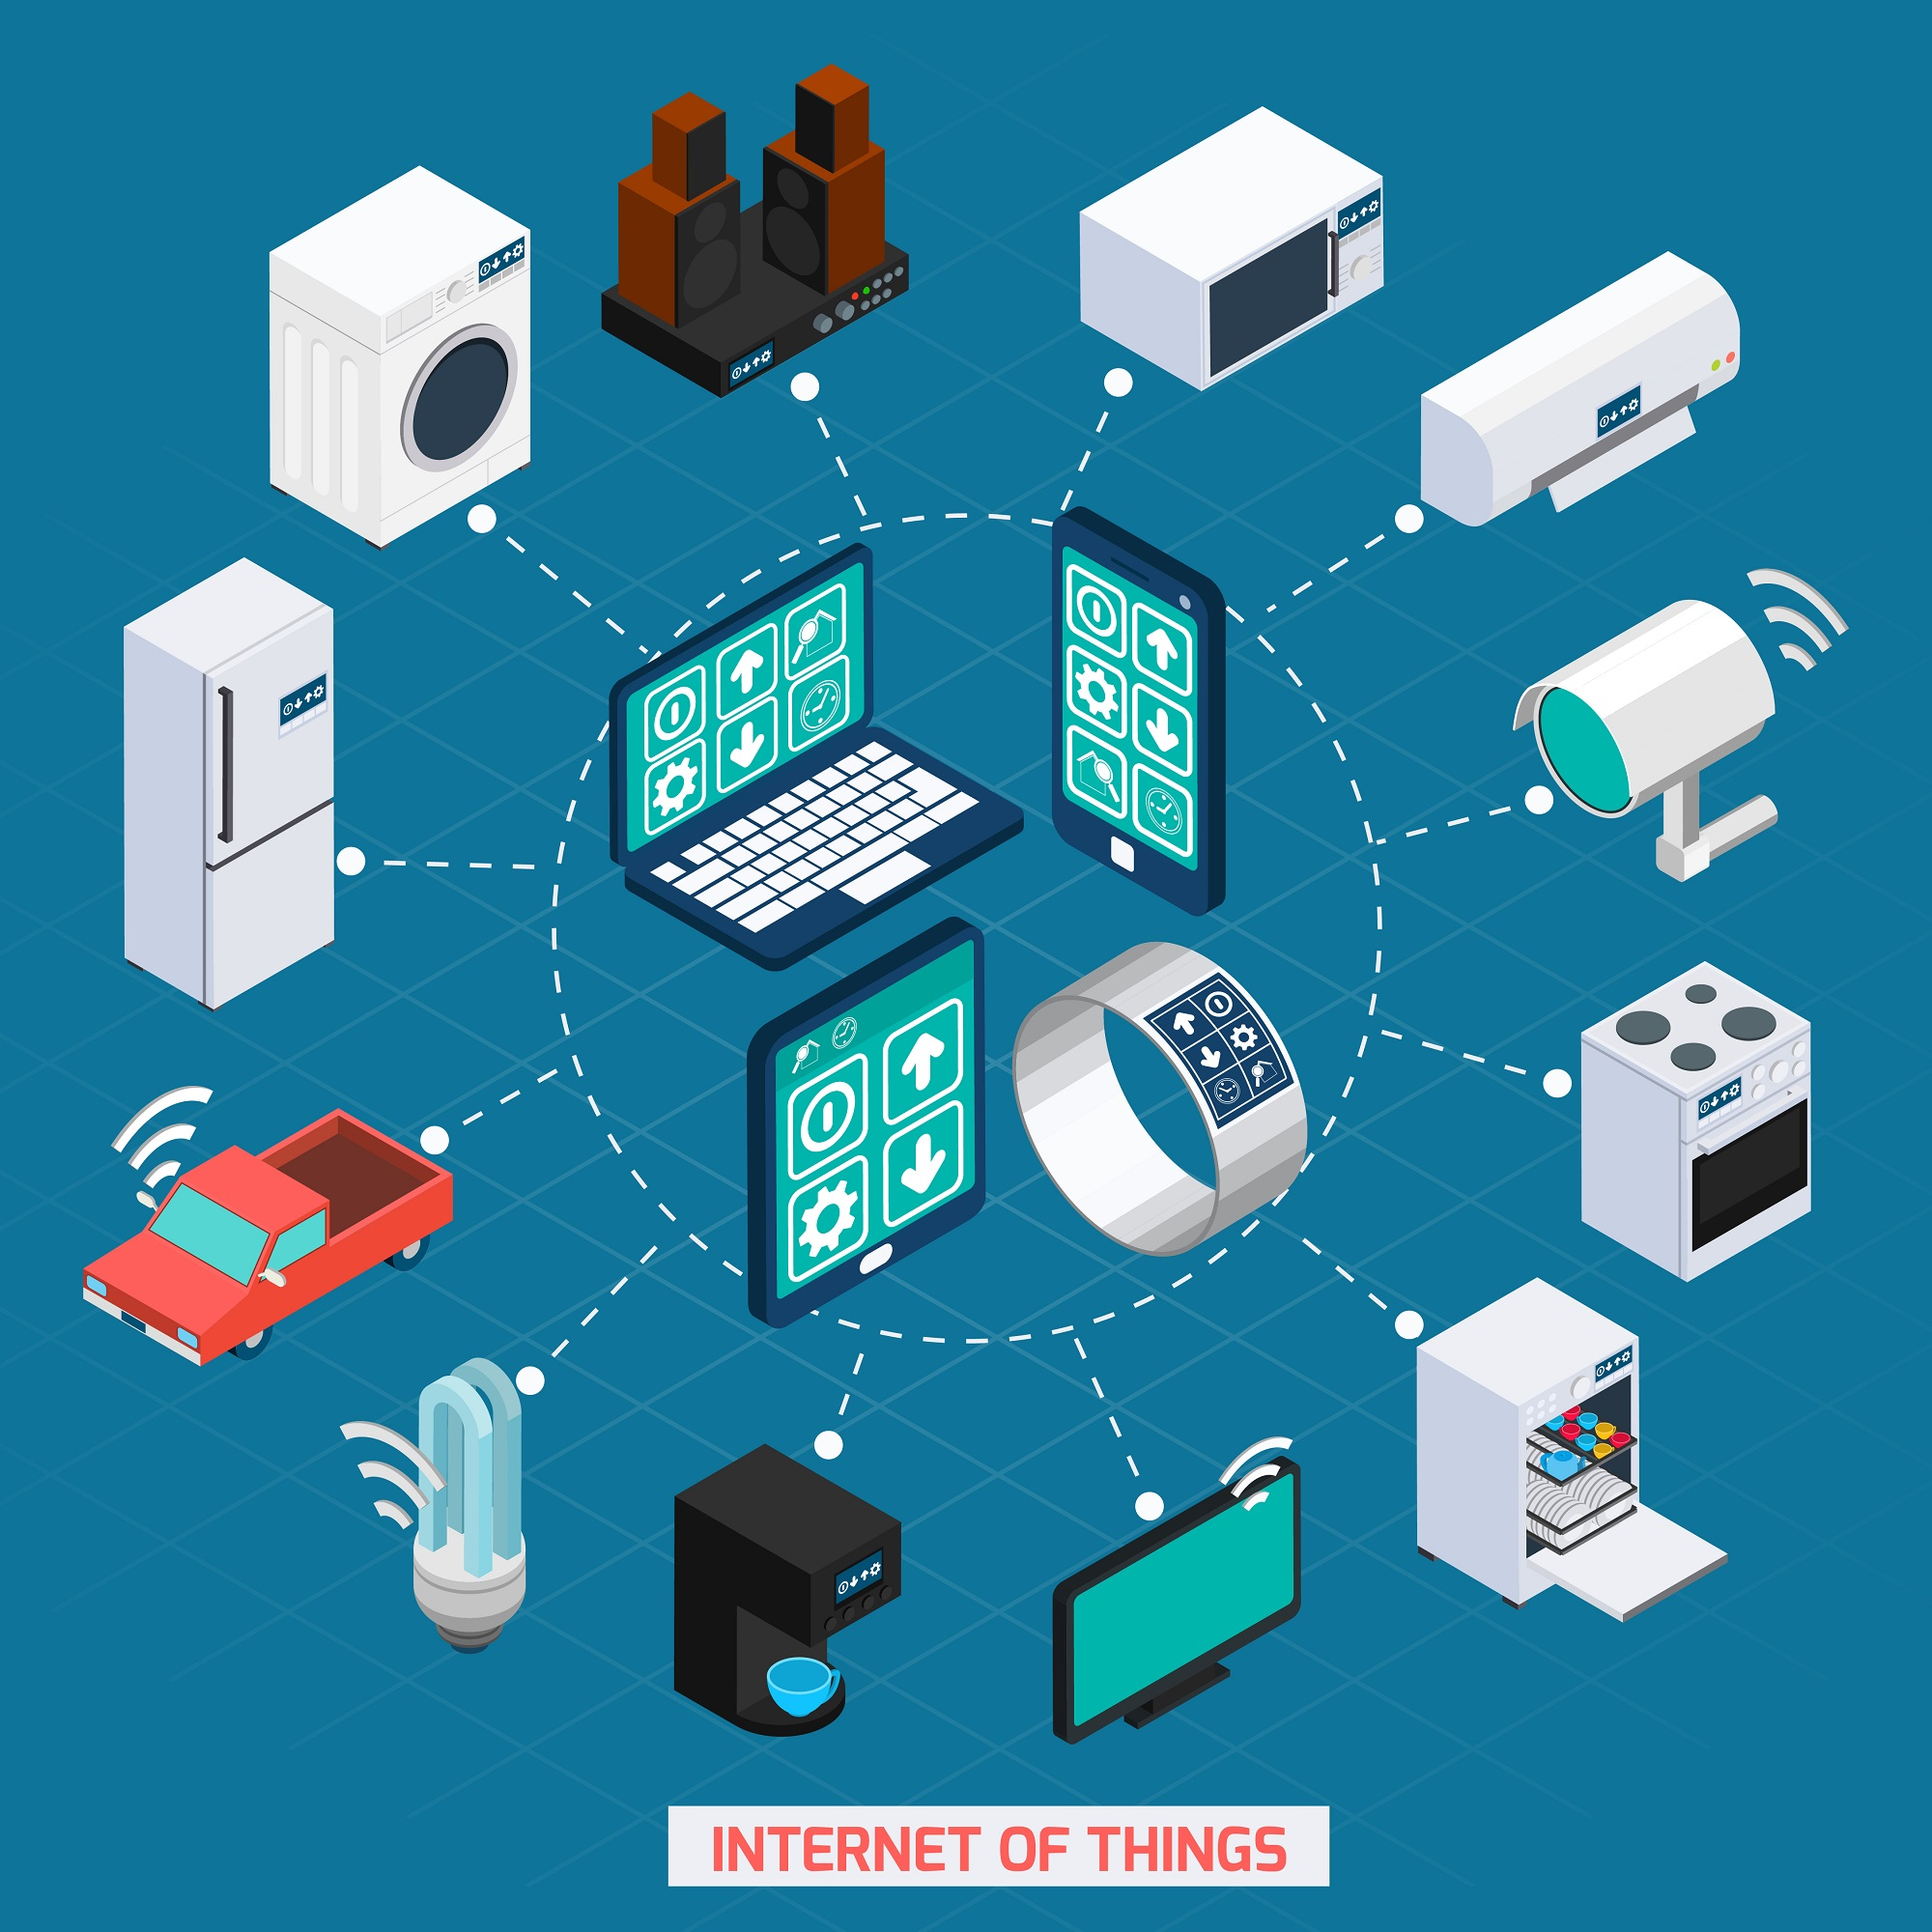 12 Tips To Safeguard The Internet Of Things